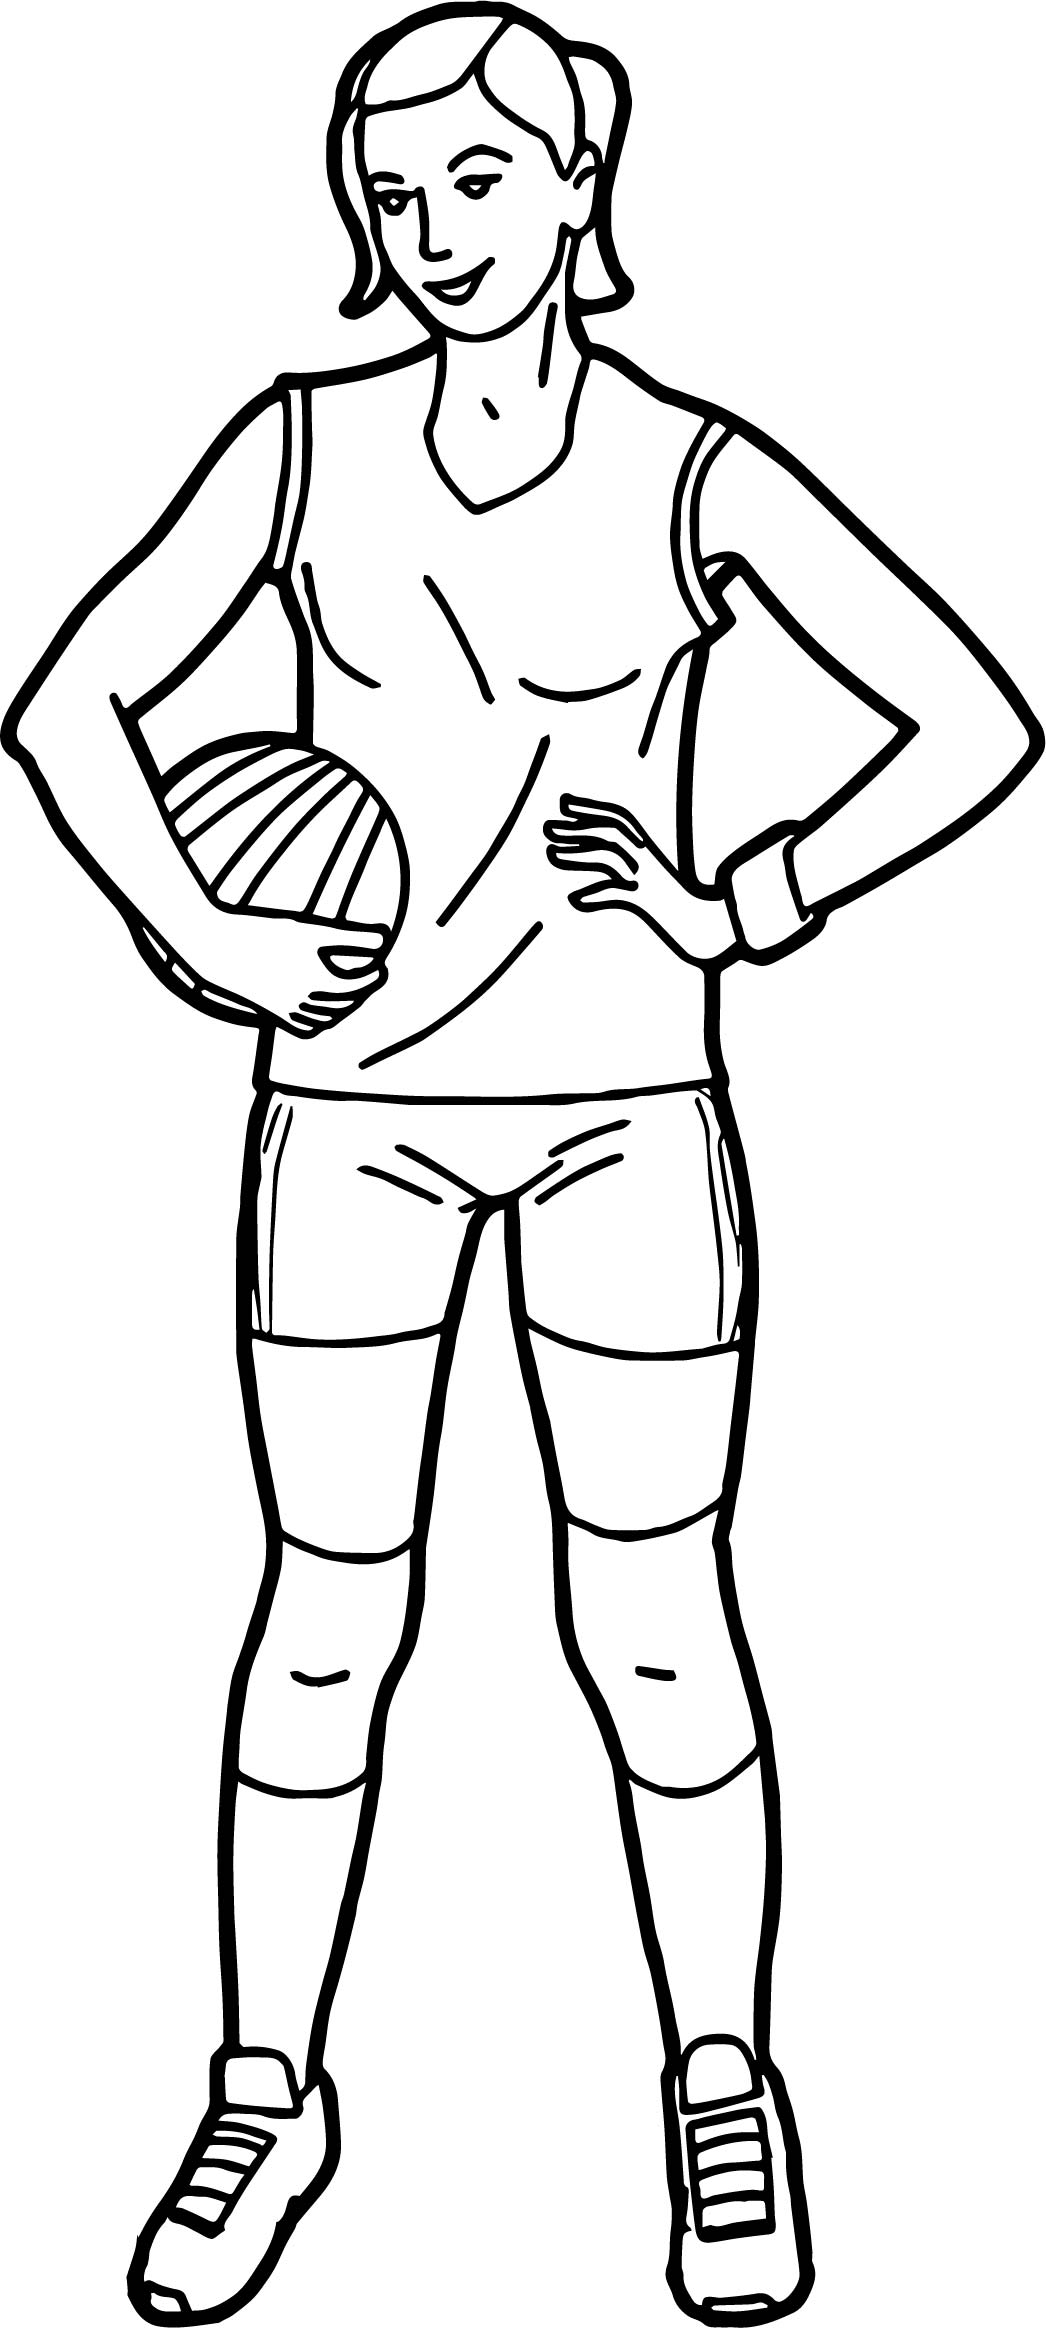 Player Holding Volleyball Girl Coloring Page